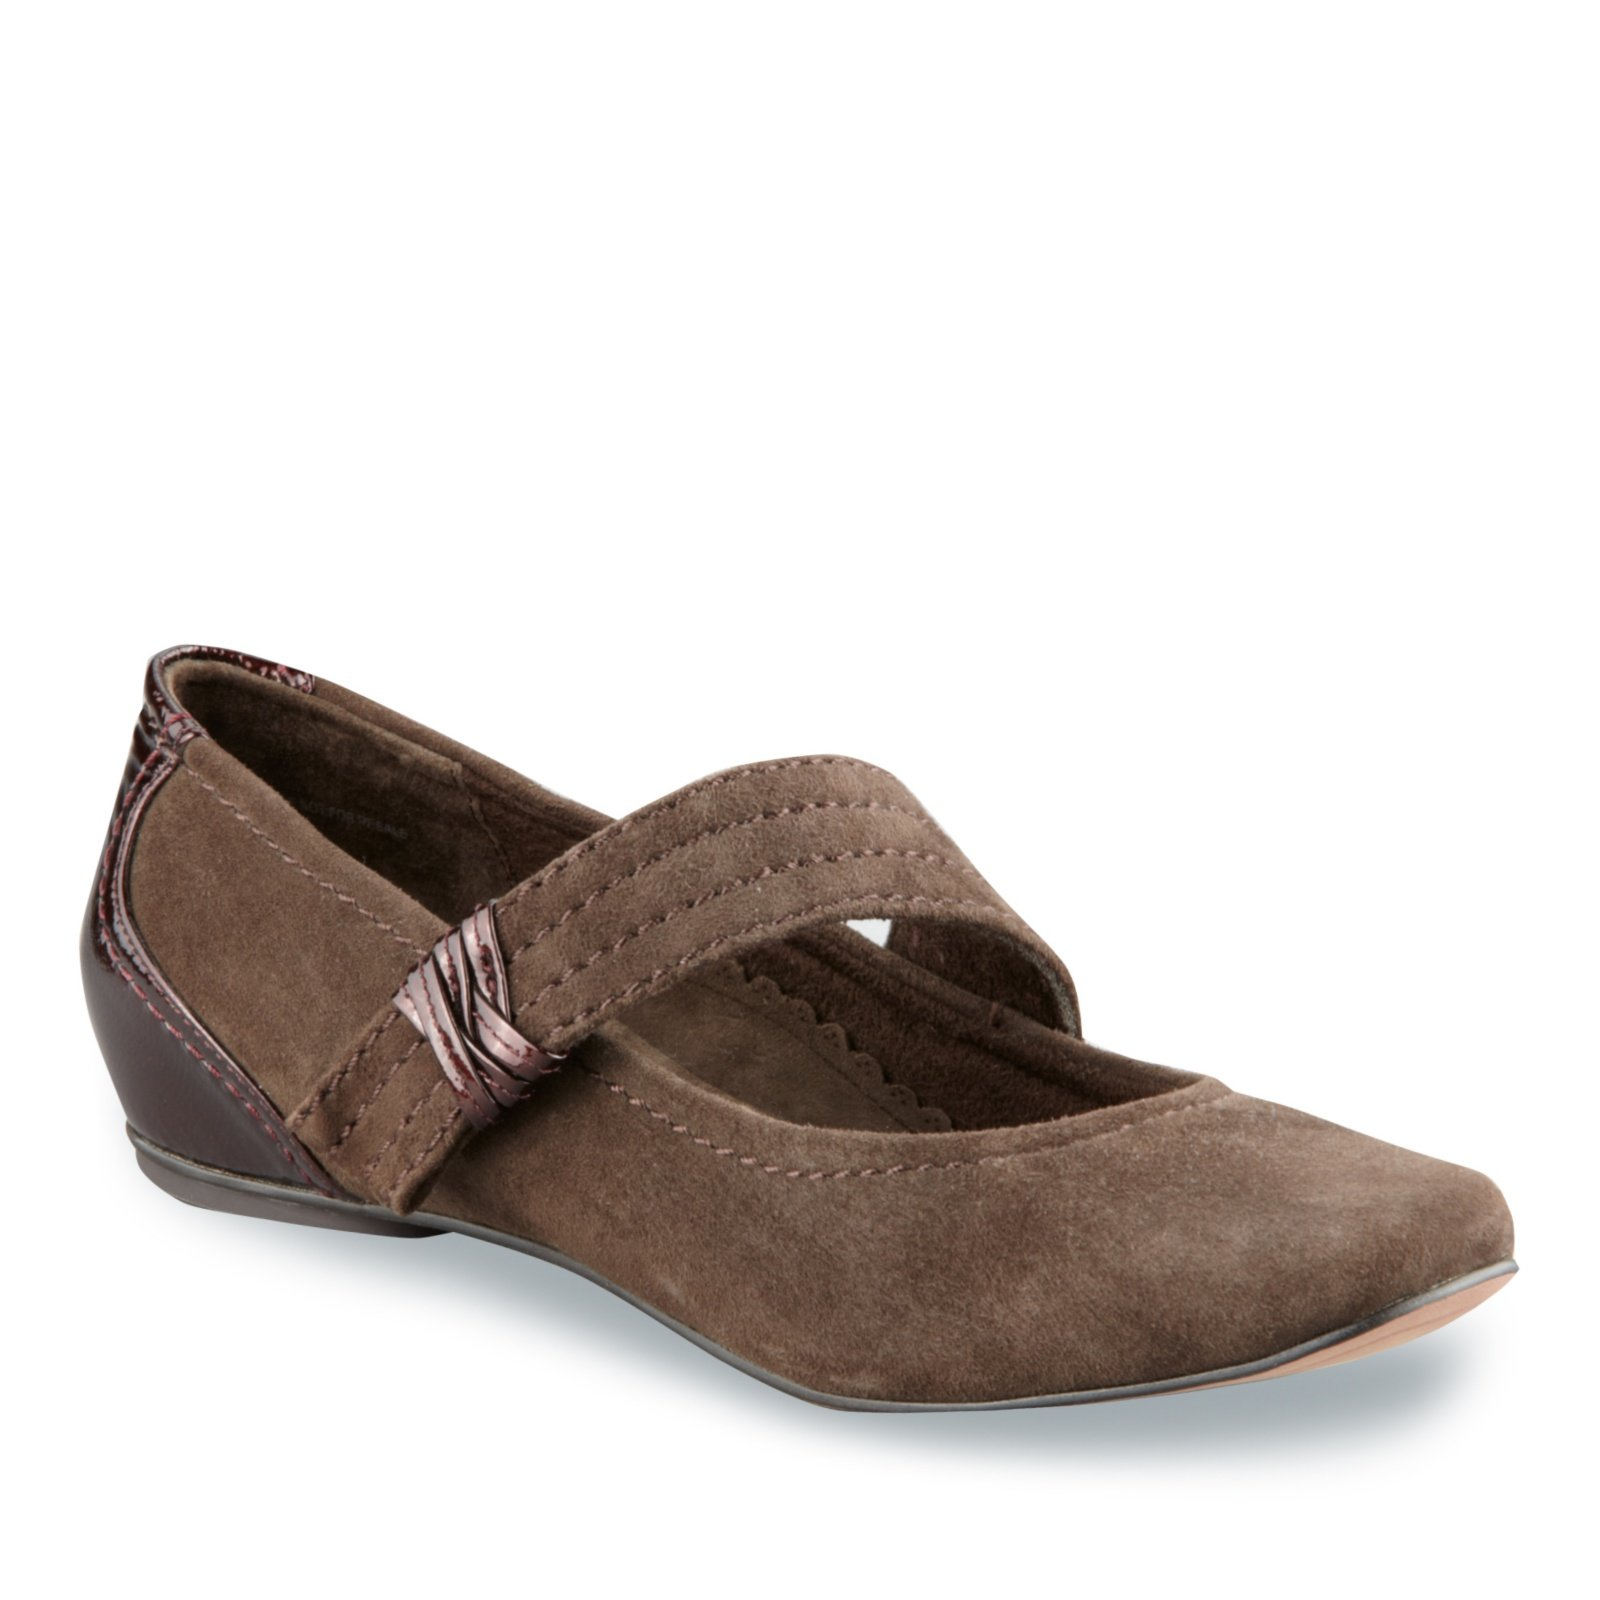 Antia Women's Bella Mary Jane Shoes, Mocha Suede, 5.5 M/C